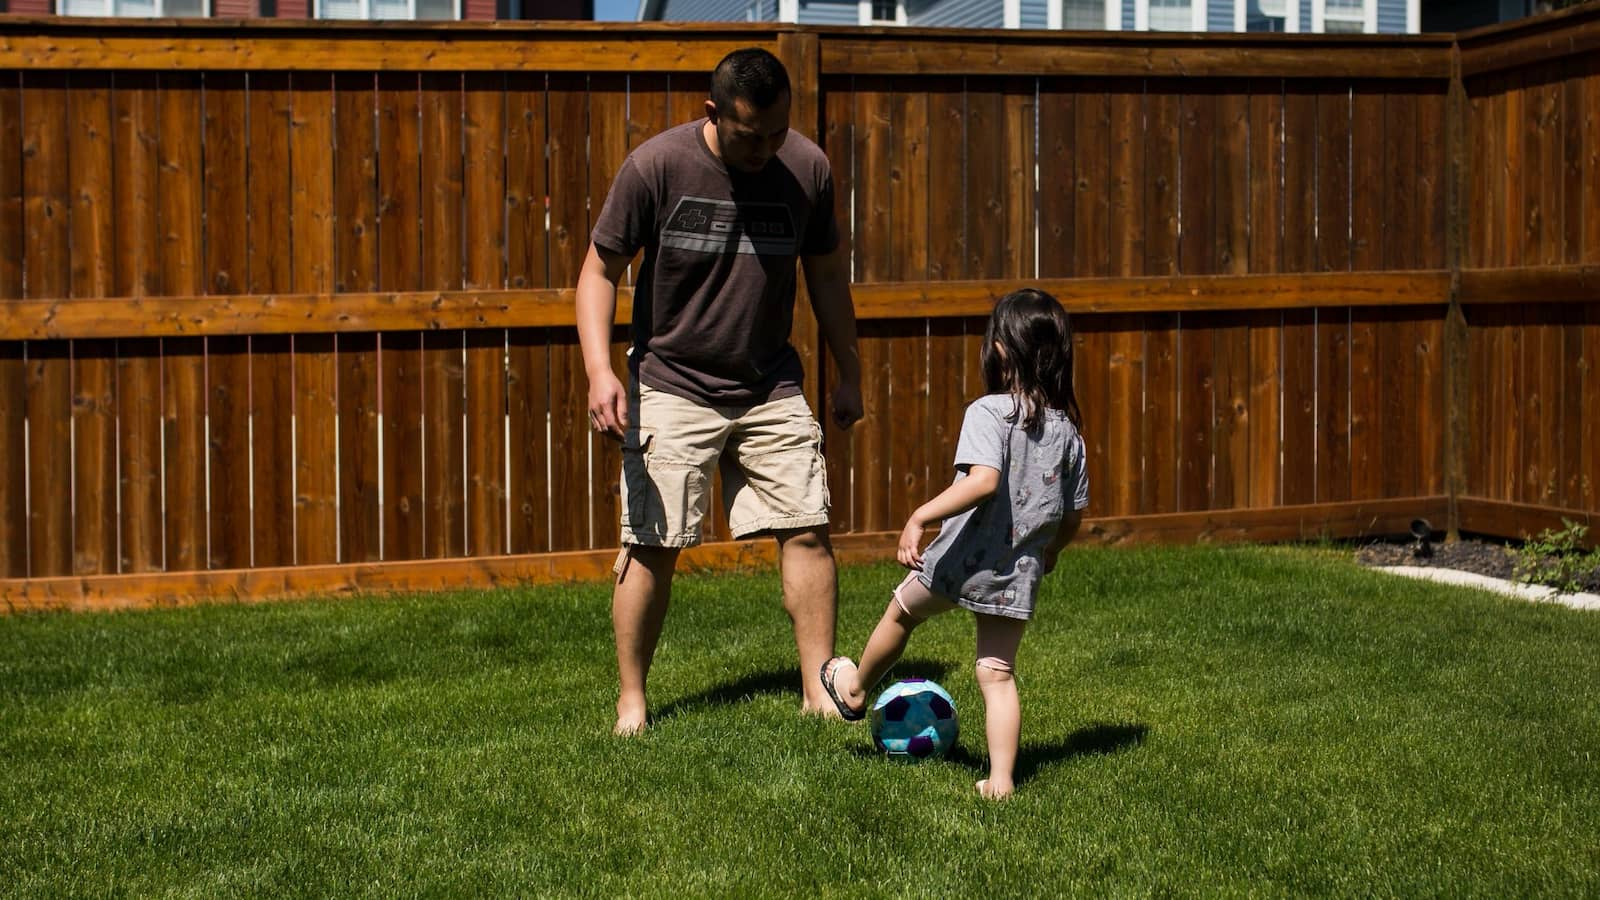 Image of a child and dad playing football in a garden.